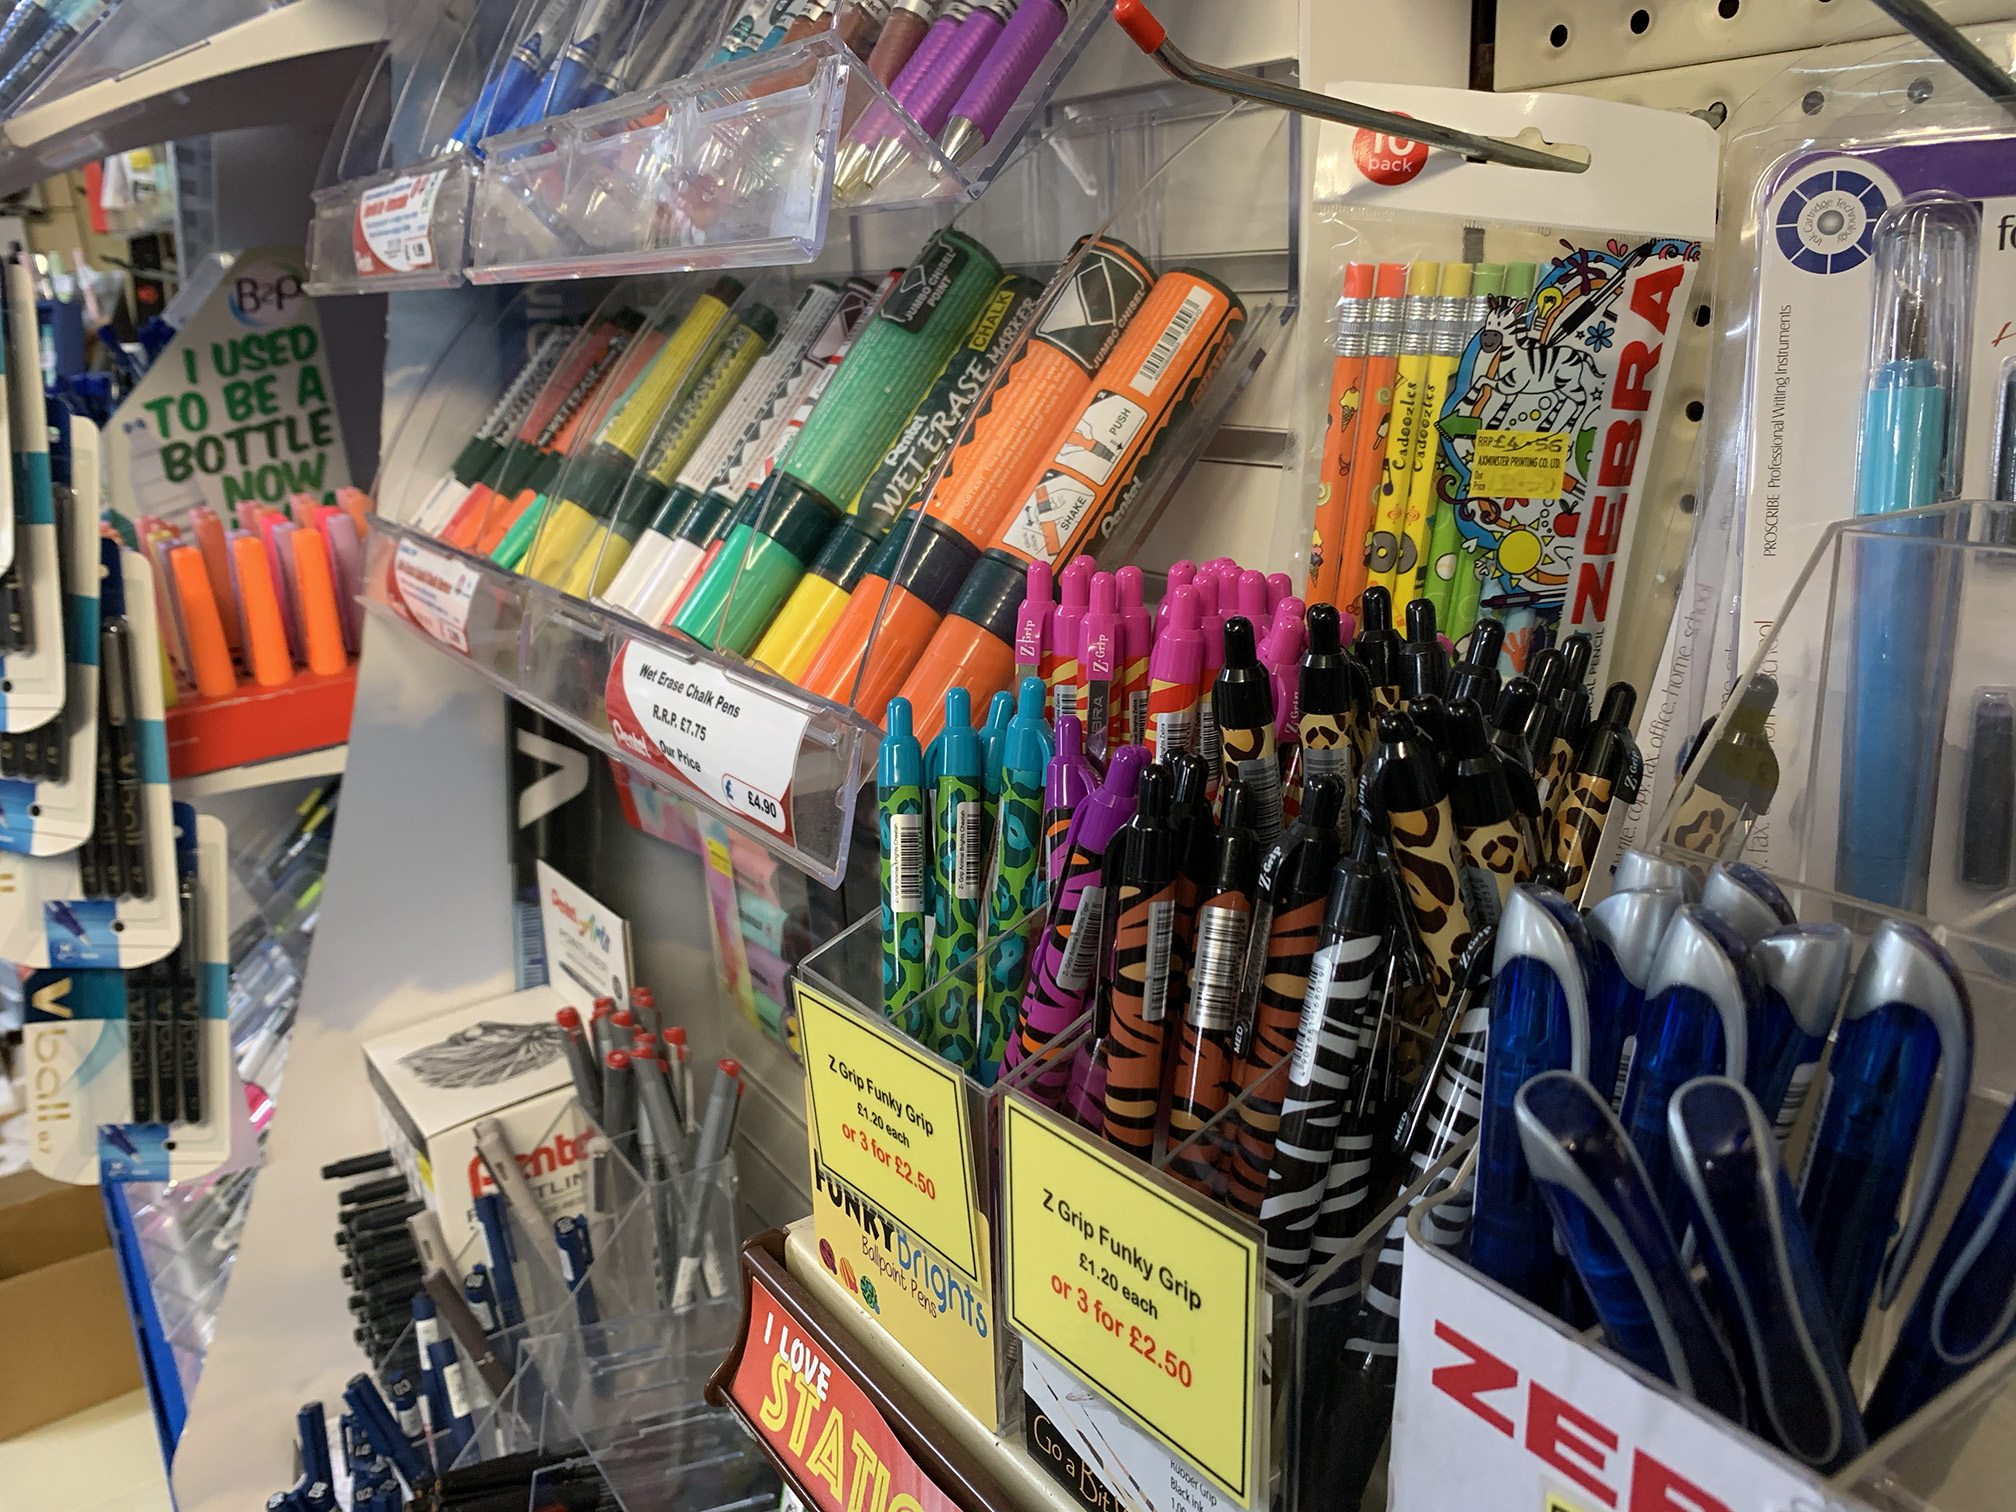 Axminster Printing - Stationery / Office Supplies